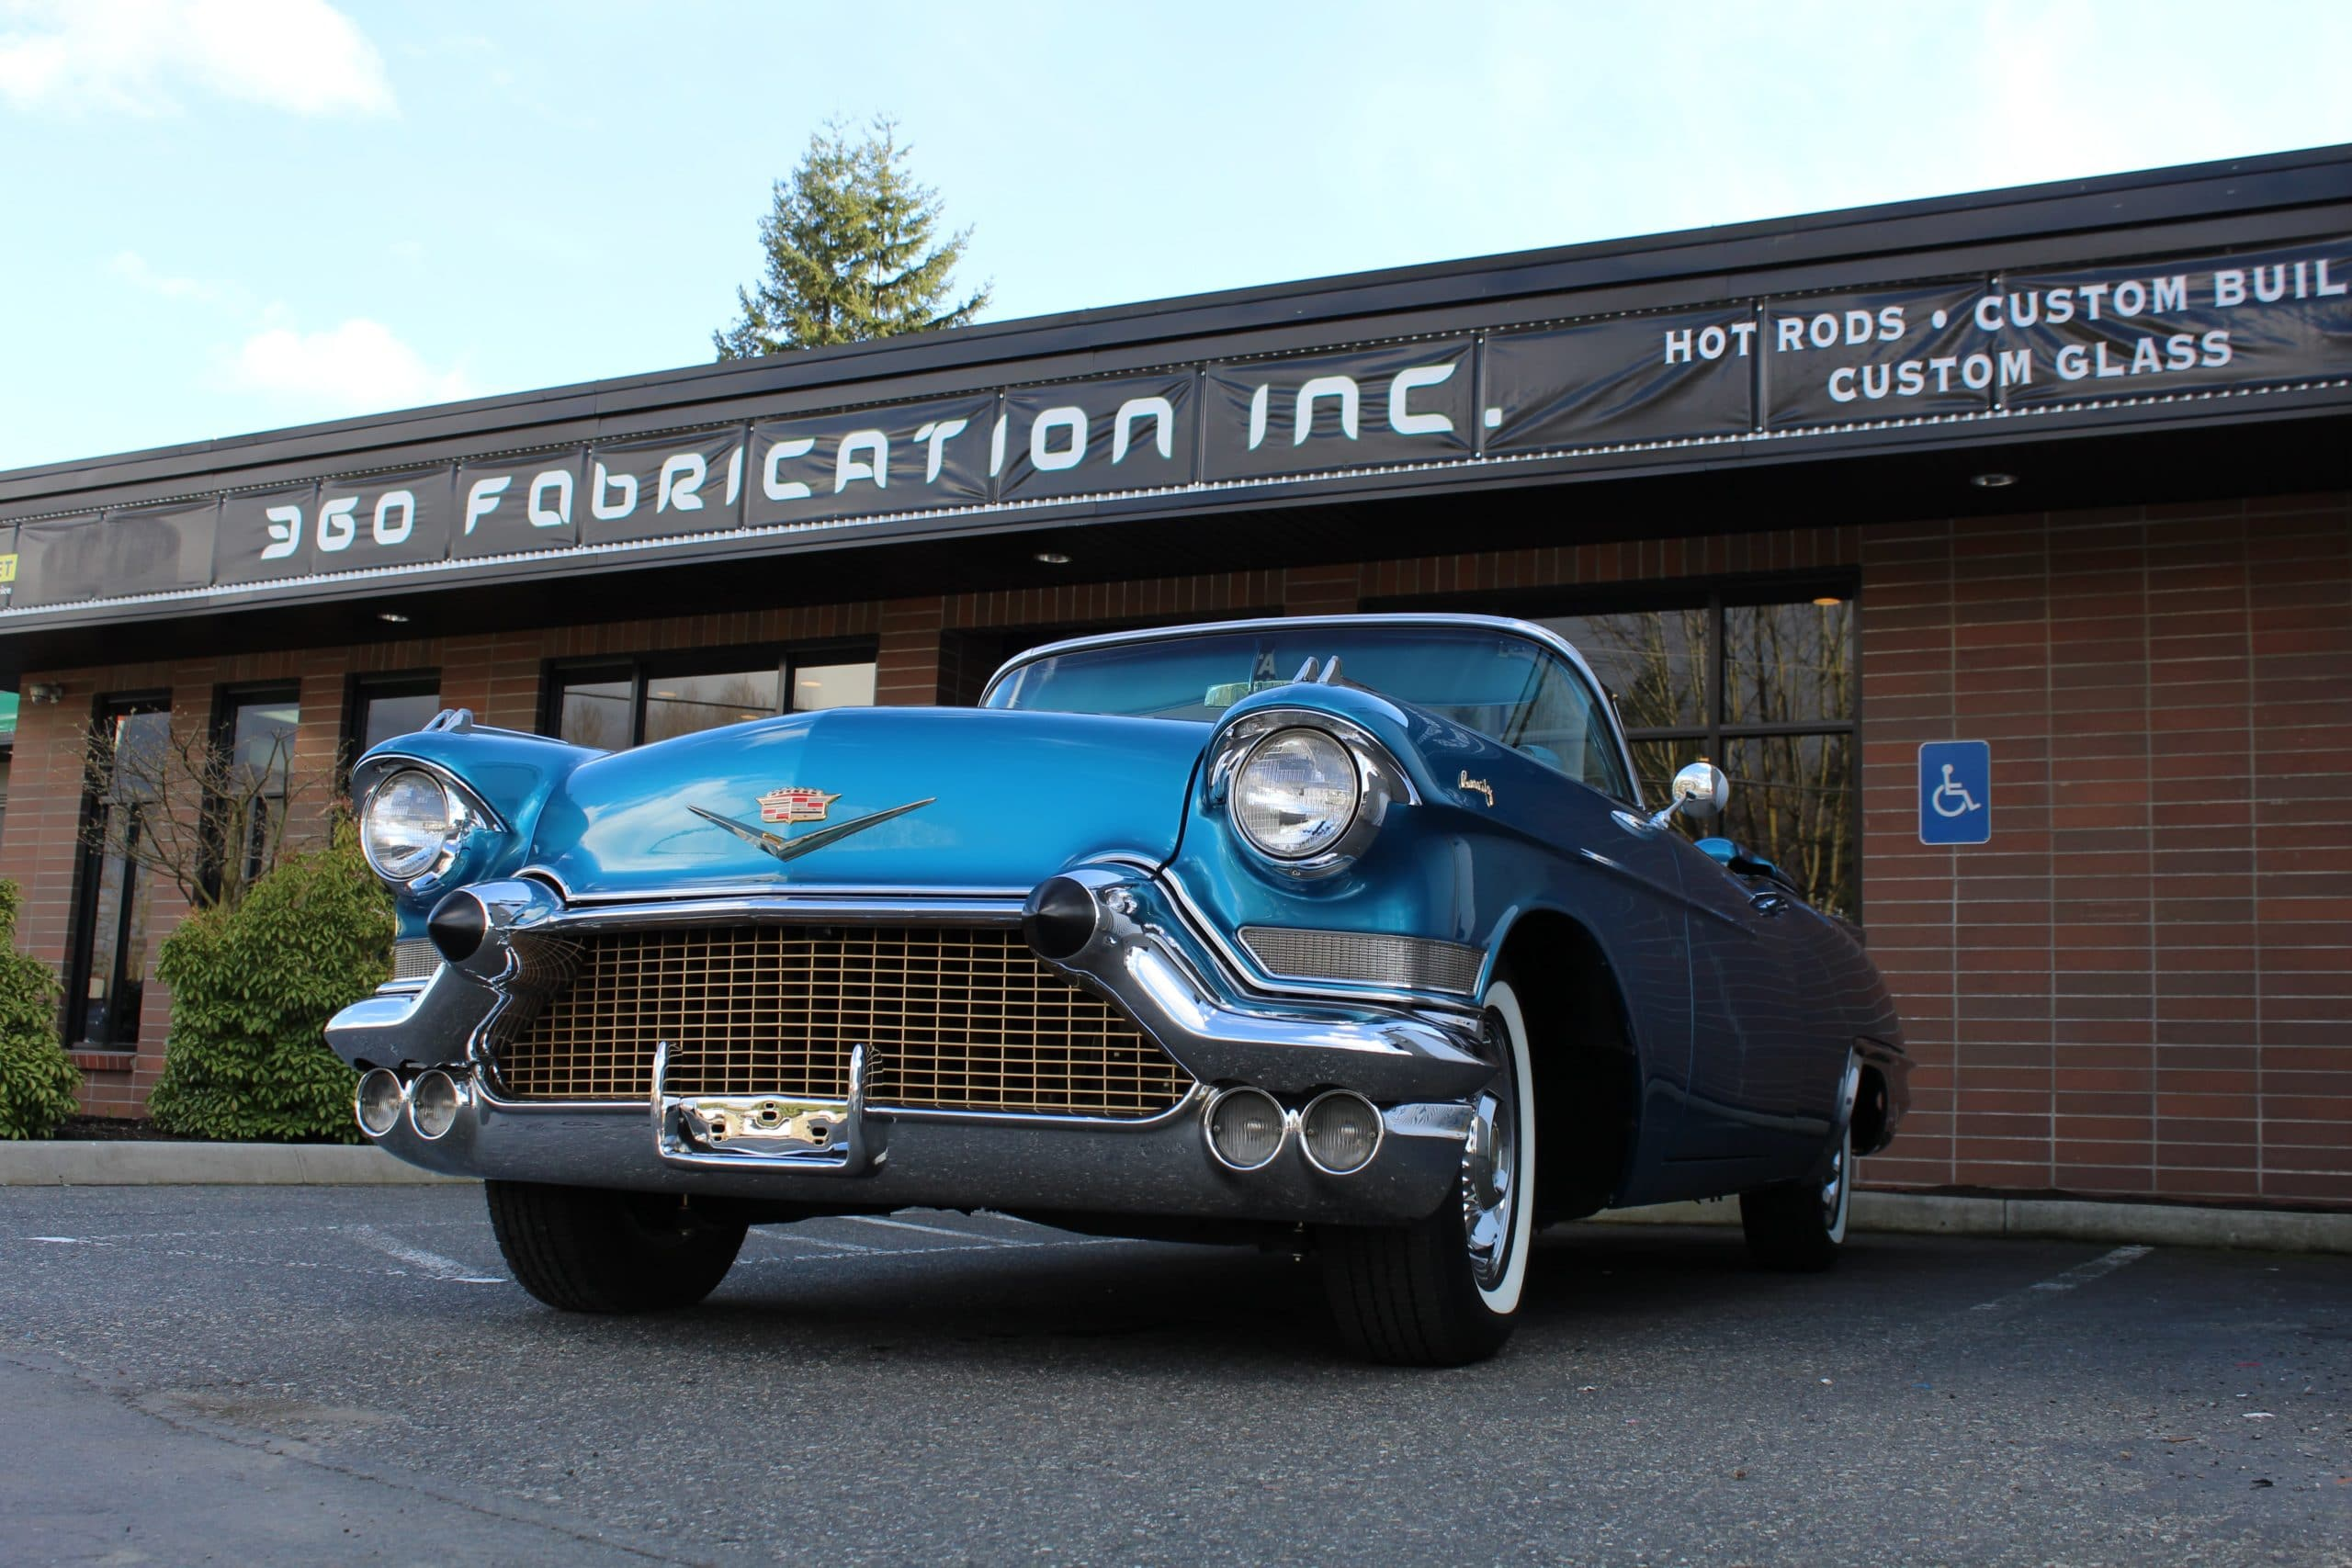 360 Fabrication 1957 Cadillac 13